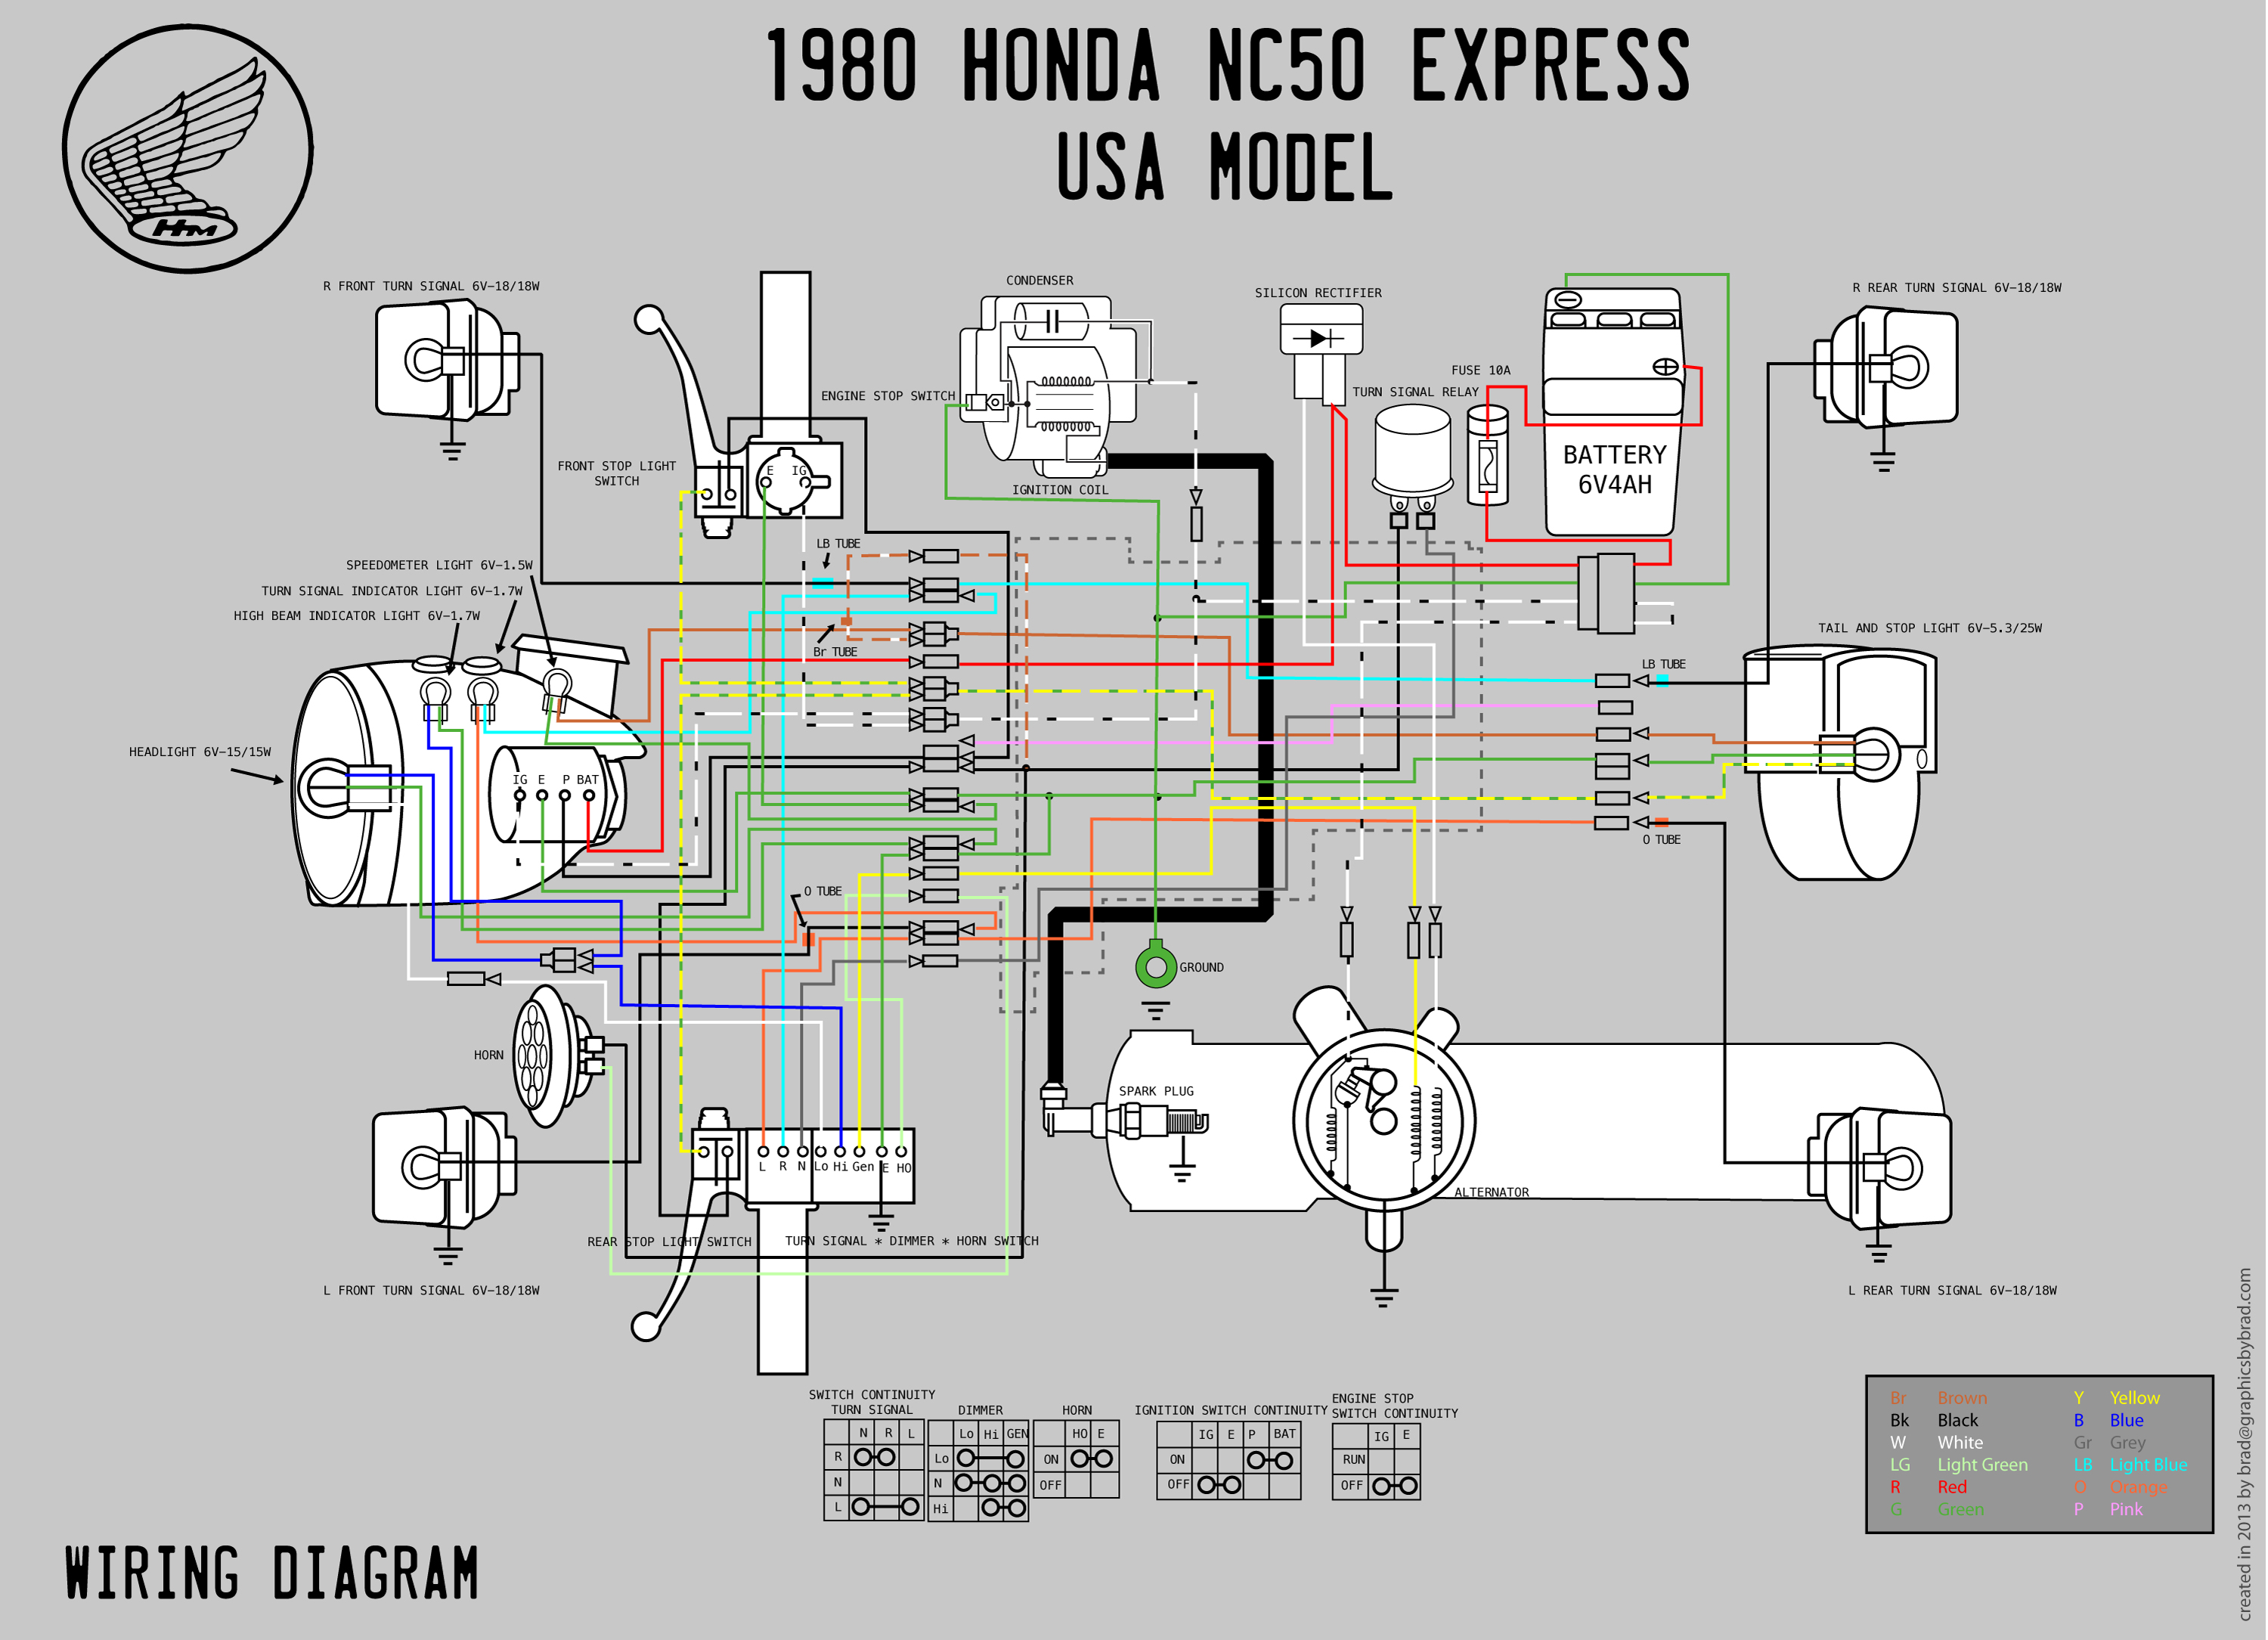 1980 honda nc50 wiring diagram - moped wiki jincheng 49cc wiring diagrams #10